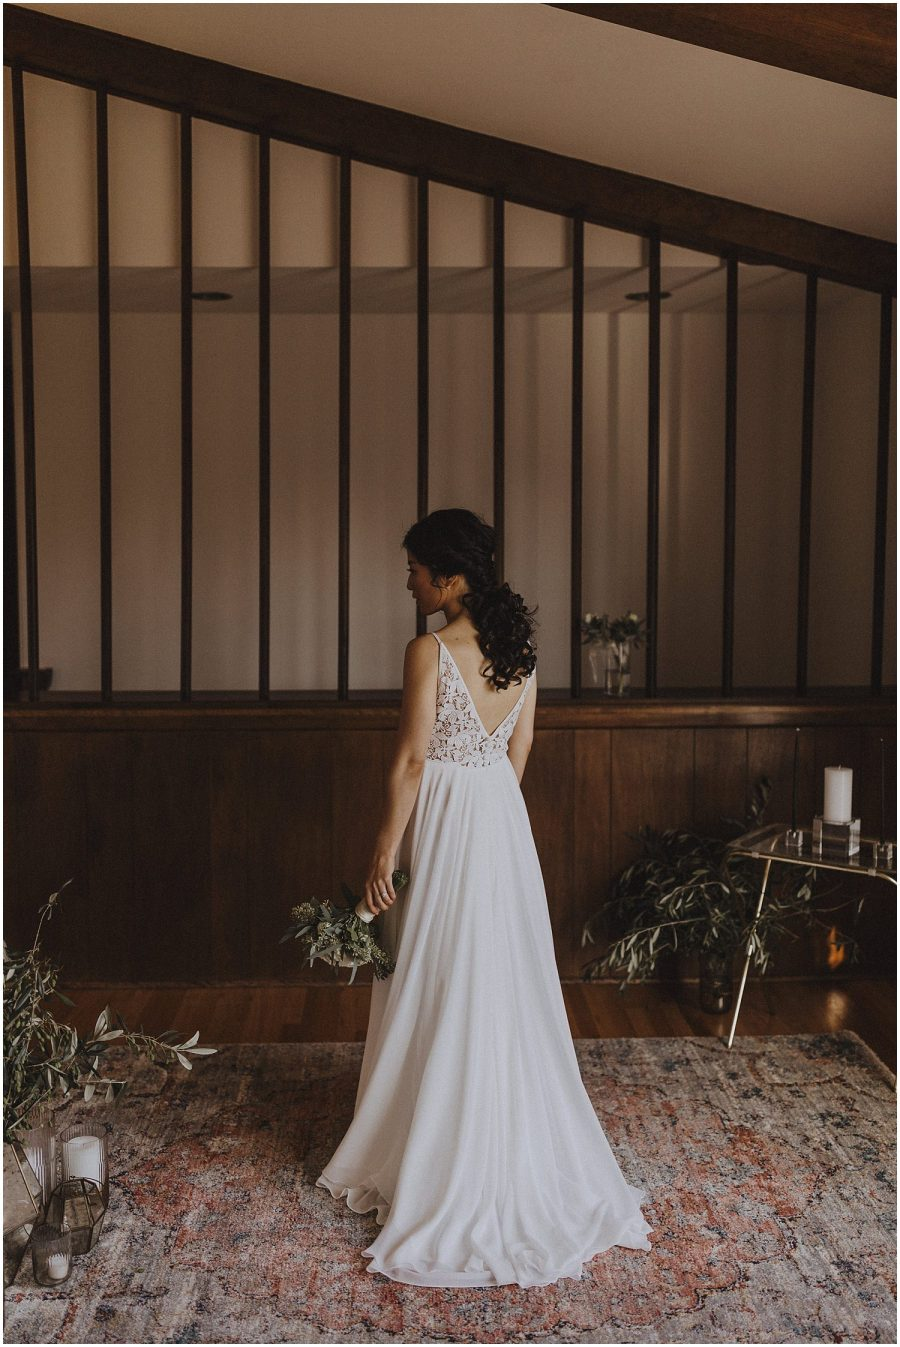 Bride standing with bouquet in her hands Chicago wedding photographer kyle szeto